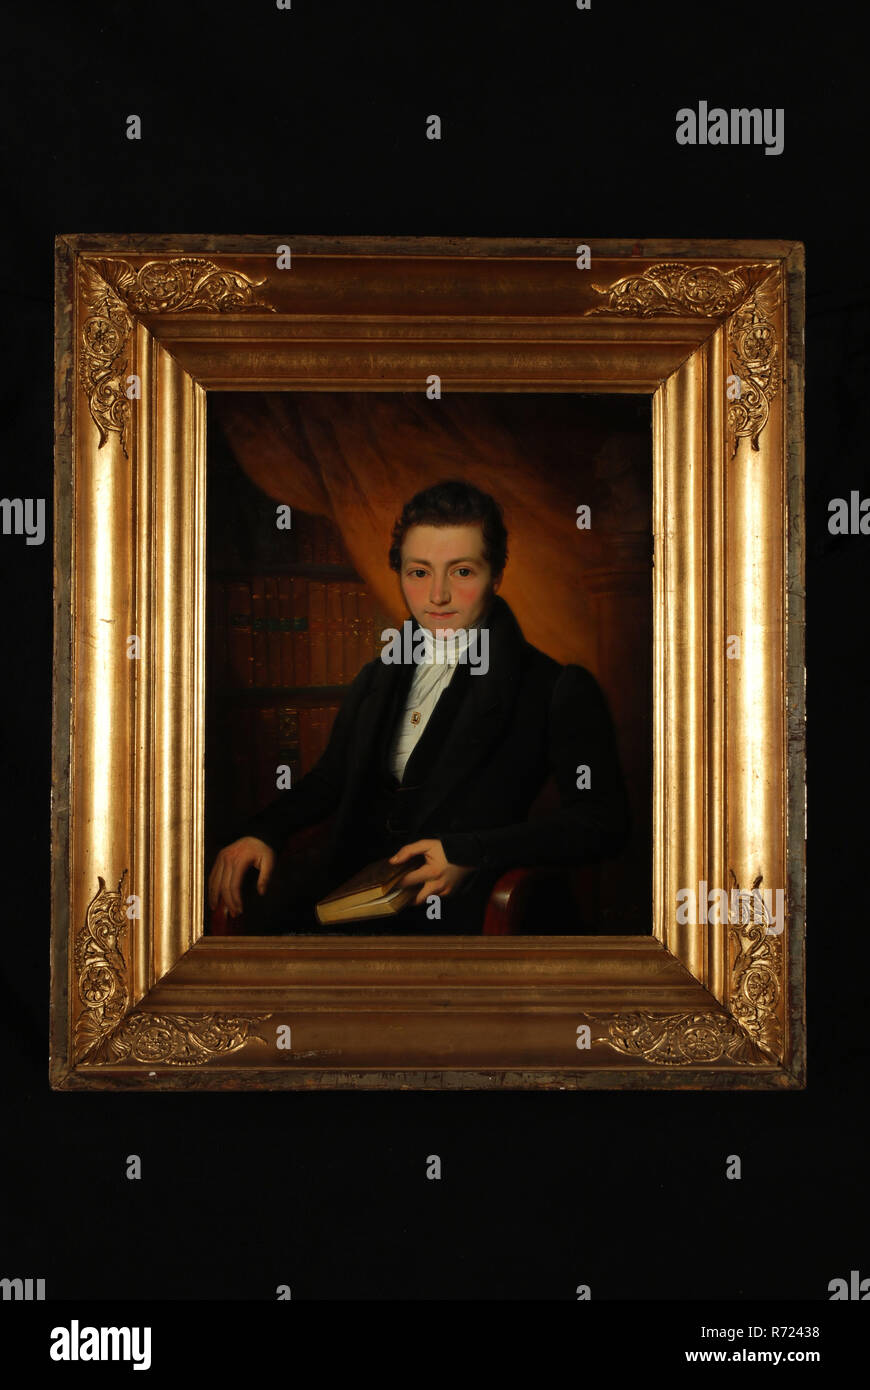 Petrus van Schendel, Portrait of man from Bernet, portrait painting footage wood oil panel, Standing rectangular portrait of man from the genus Bernet bottom right signature and year: PVS fect 1834 Rotterdam The collection C Bernet was auctioned on 20 June 1933 in Rotterdam. Stock Photo